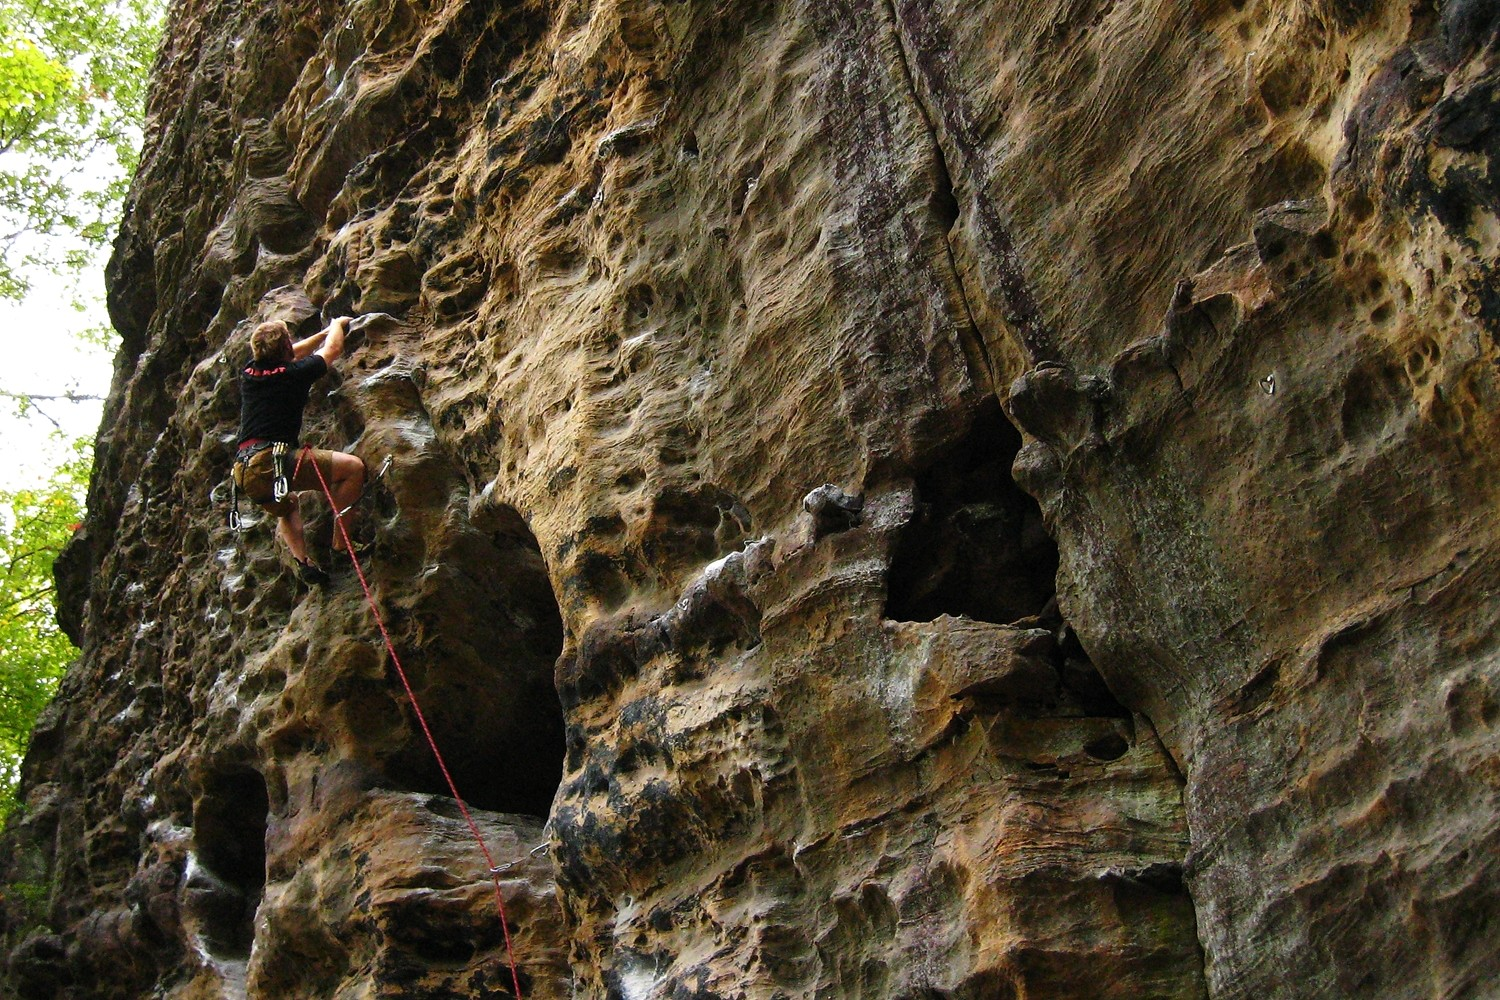 Green Horn (5.11), Solar Collector, Red River Gorge, USA